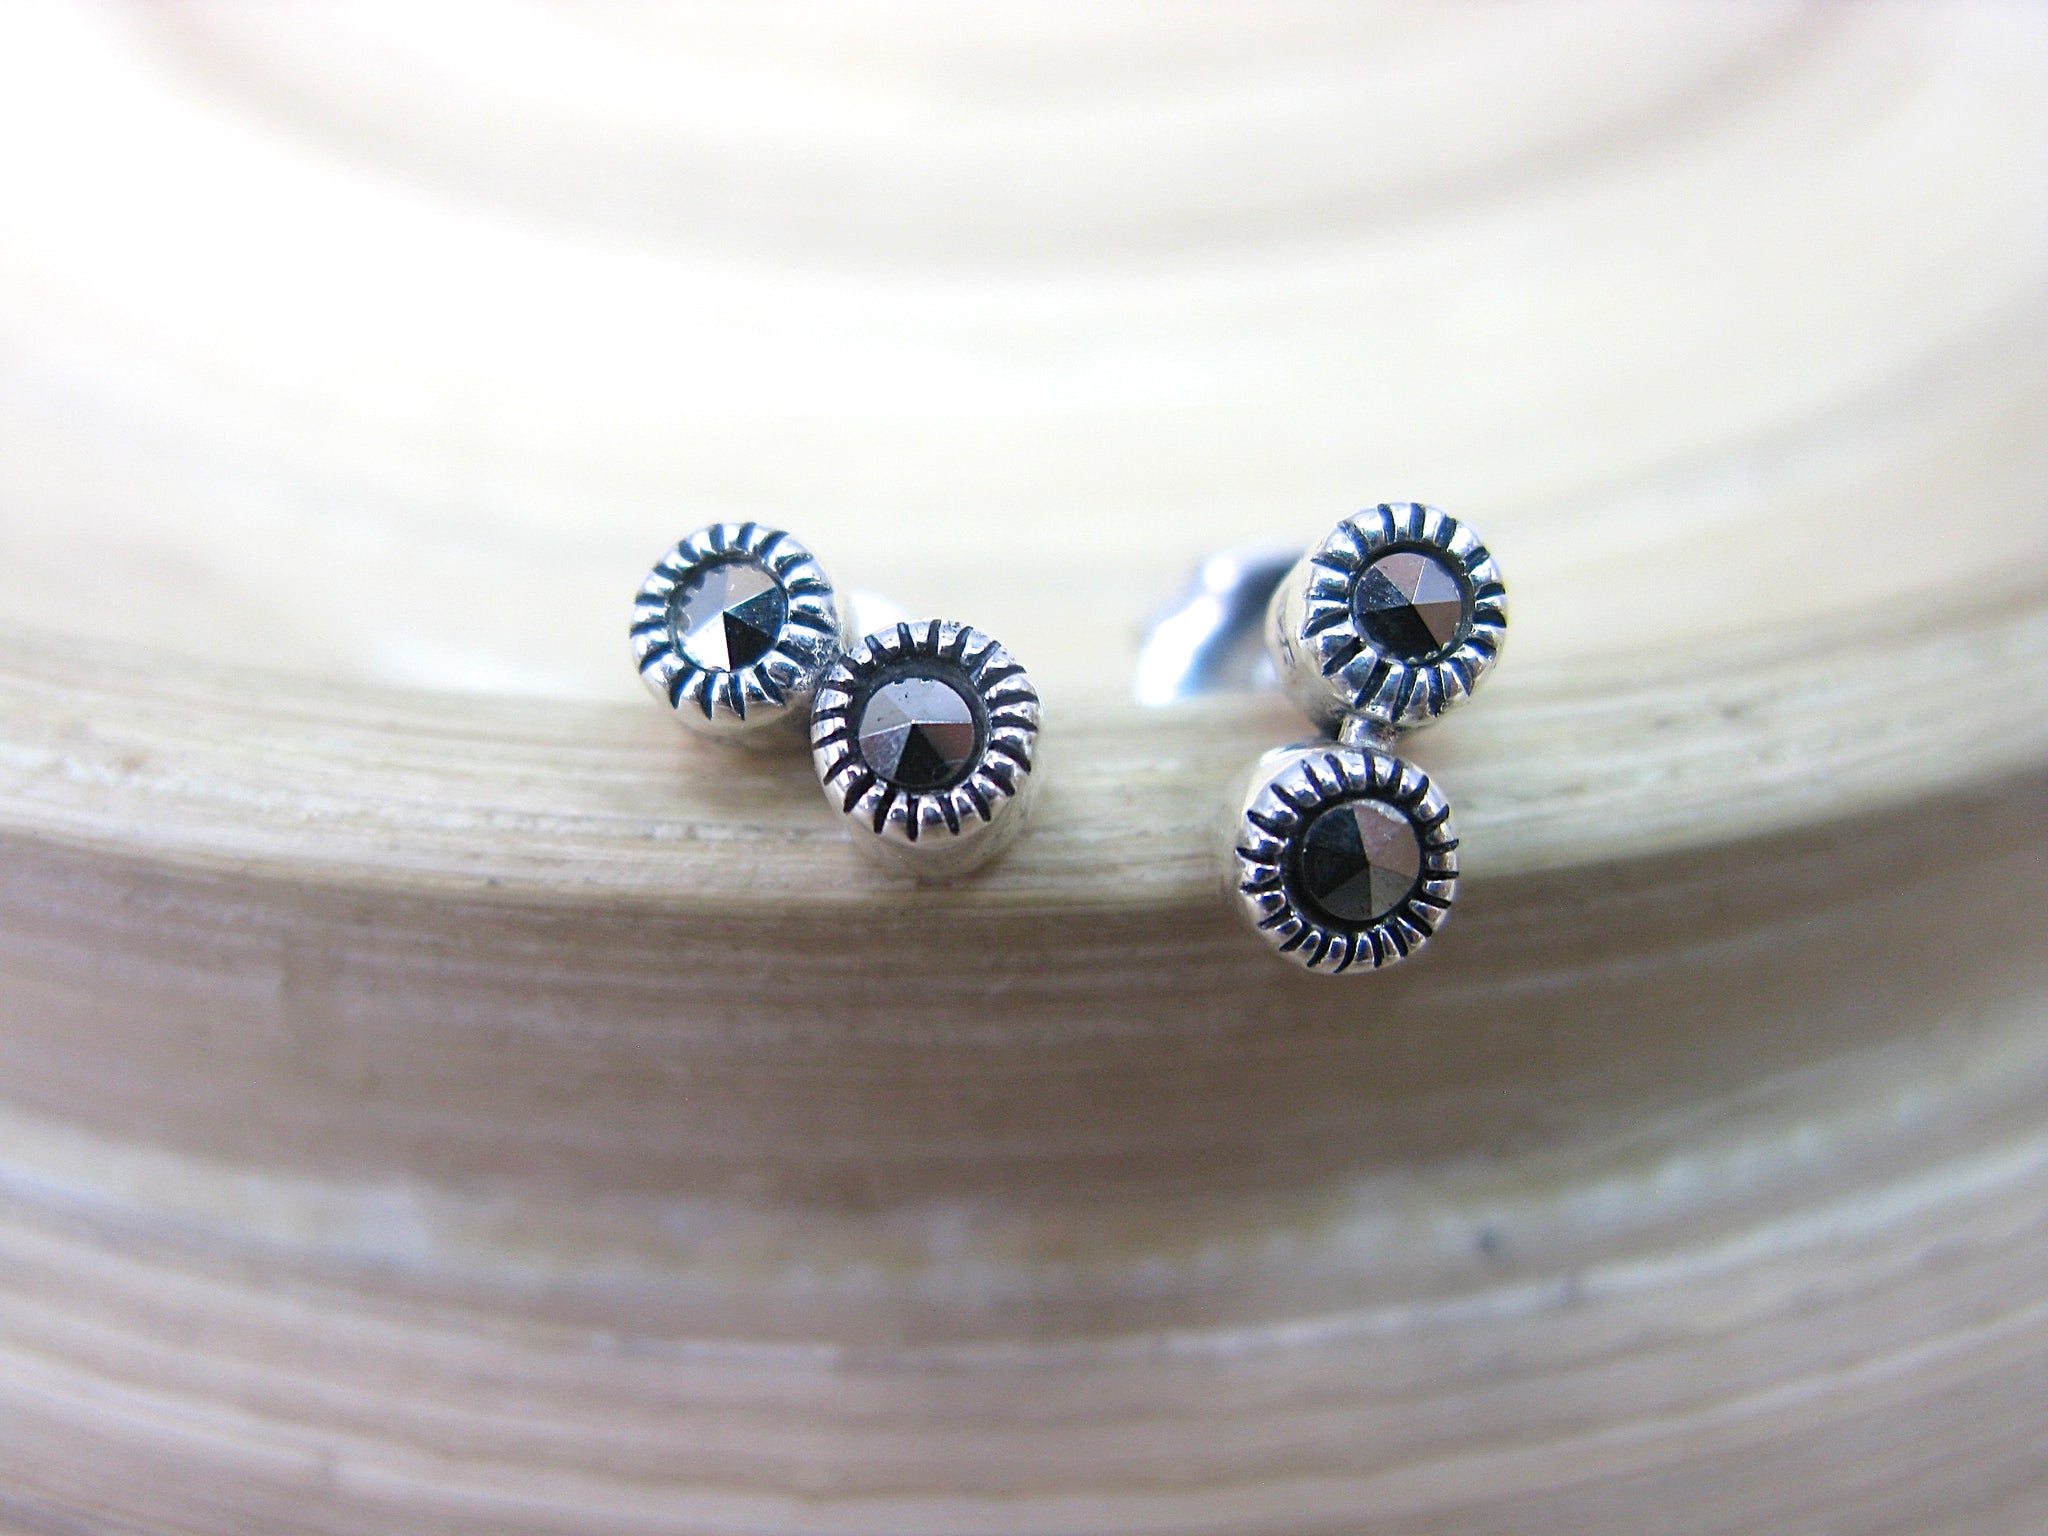 2 Round Minimalist Marcasite 925 Sterling Silver Stud Earrings